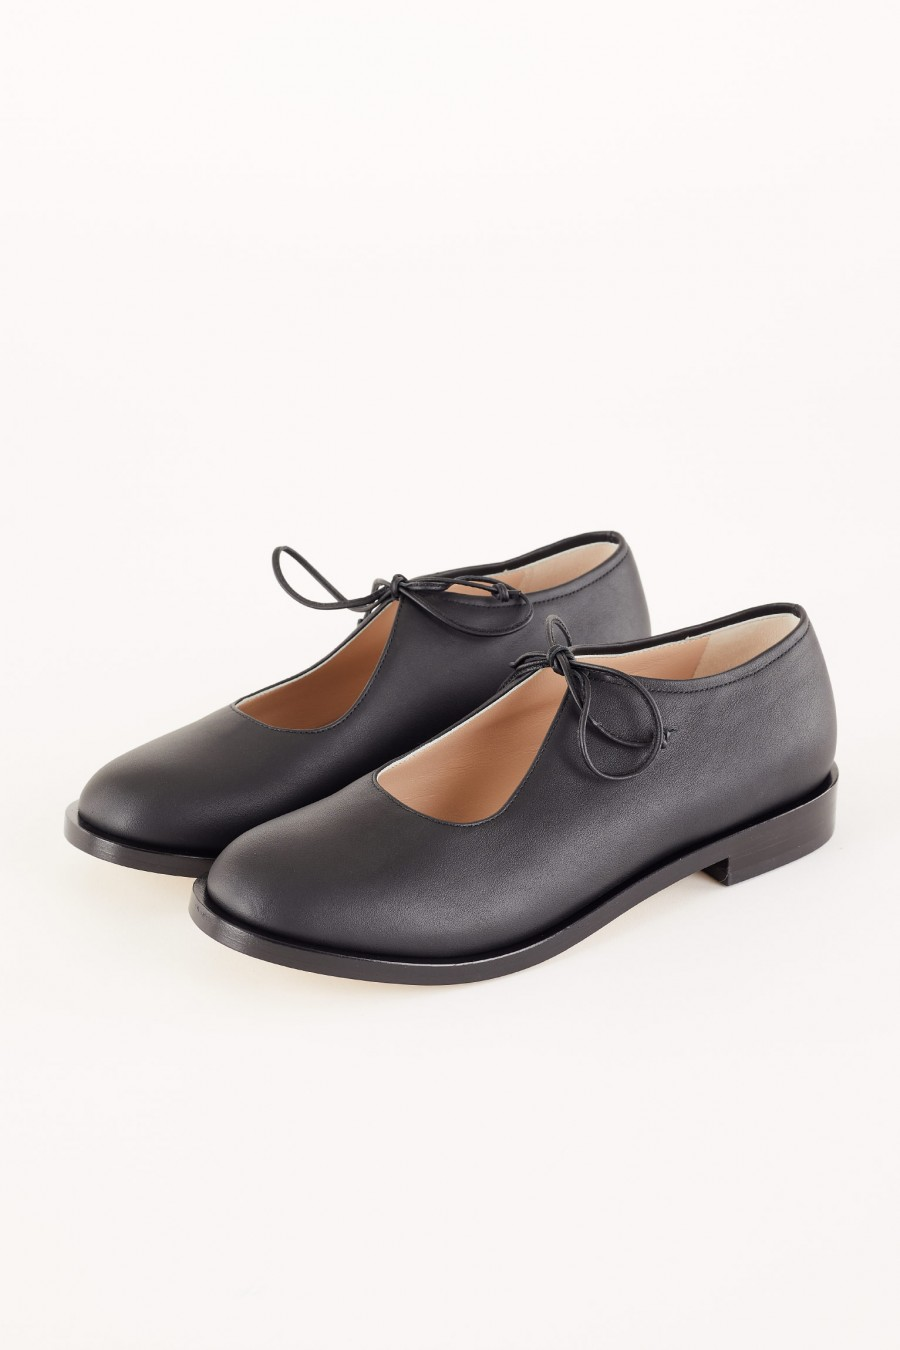 leather shoes with round toe